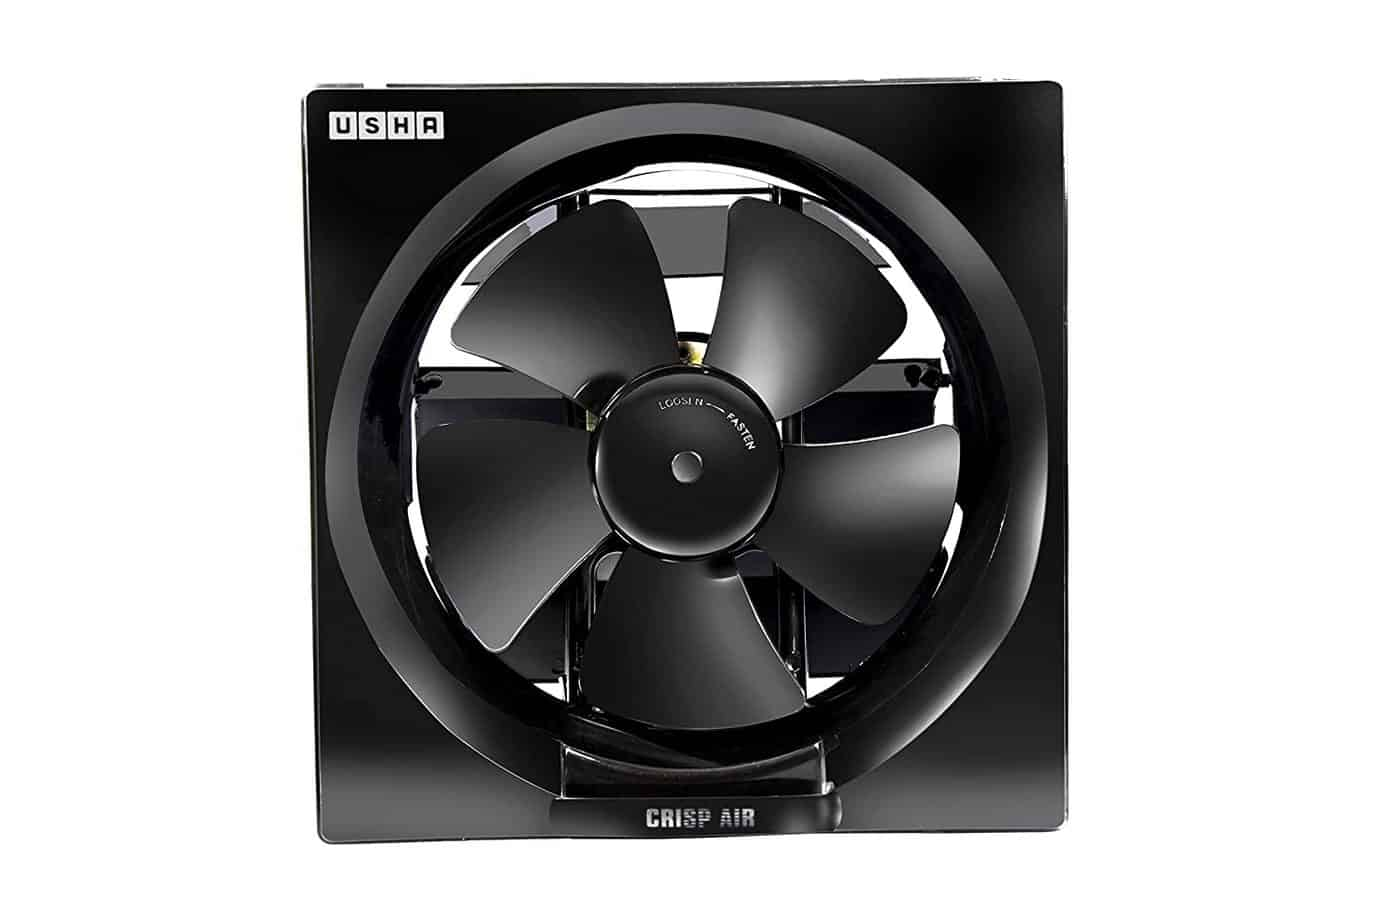 Usha Crisp Air Exhaust Fan - 200 mm